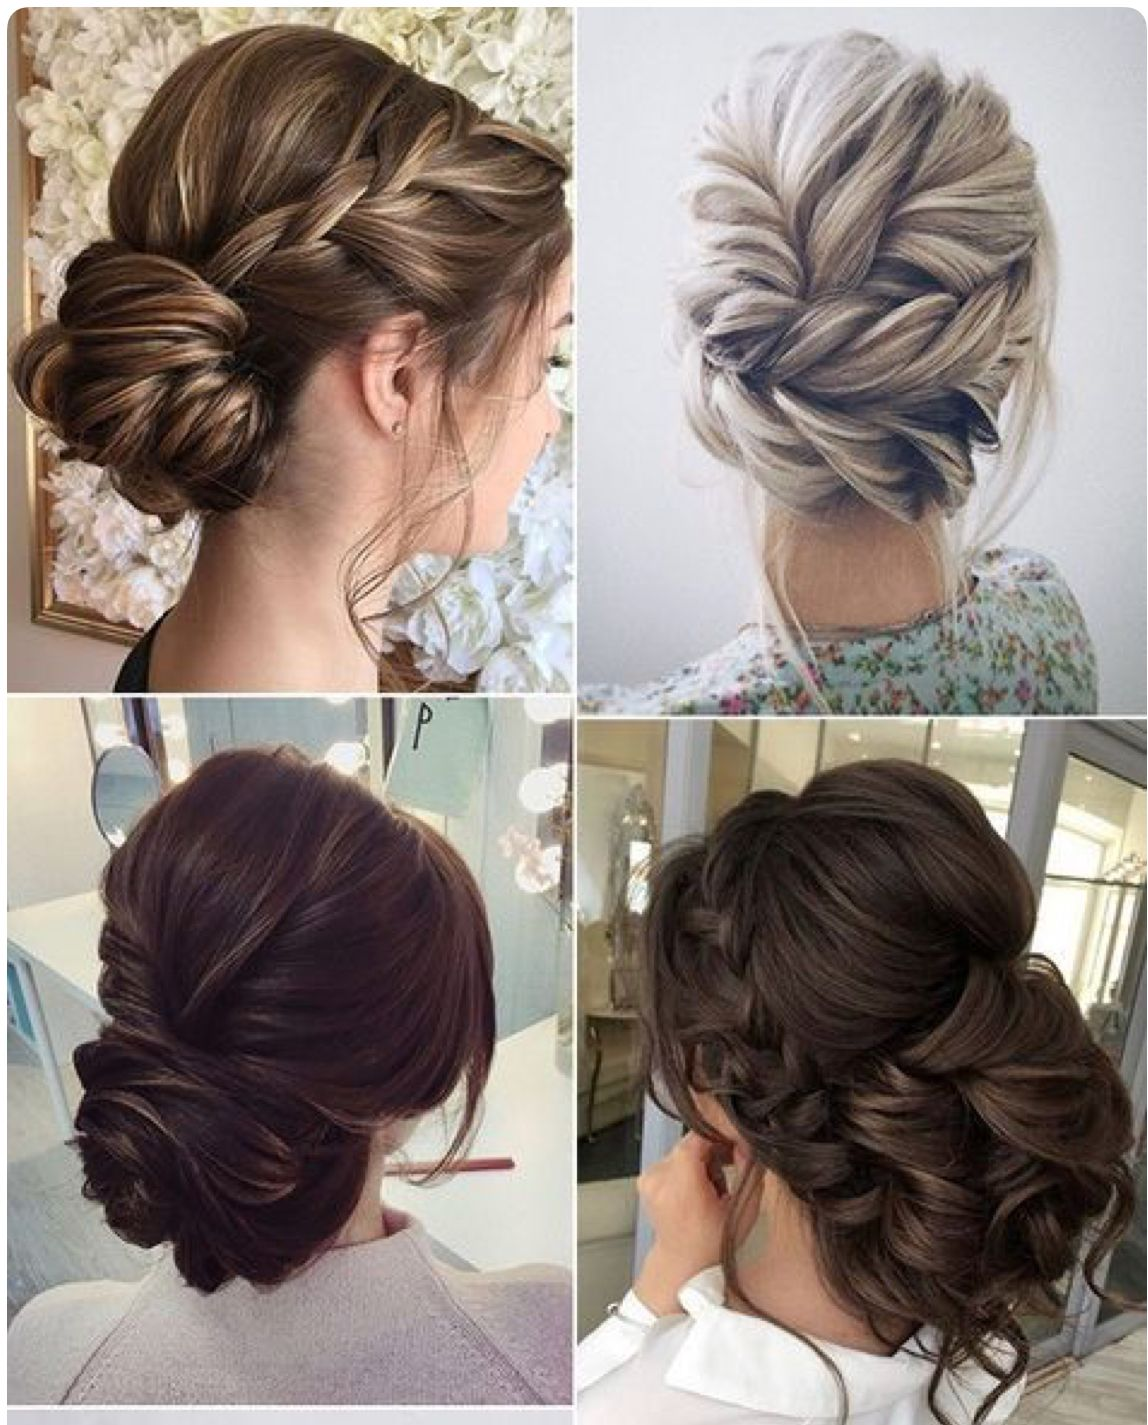 Pin By Cathy Wang On Hairs Dance Hairstyles Matric Dance Hairstyles Latest Hairstyles